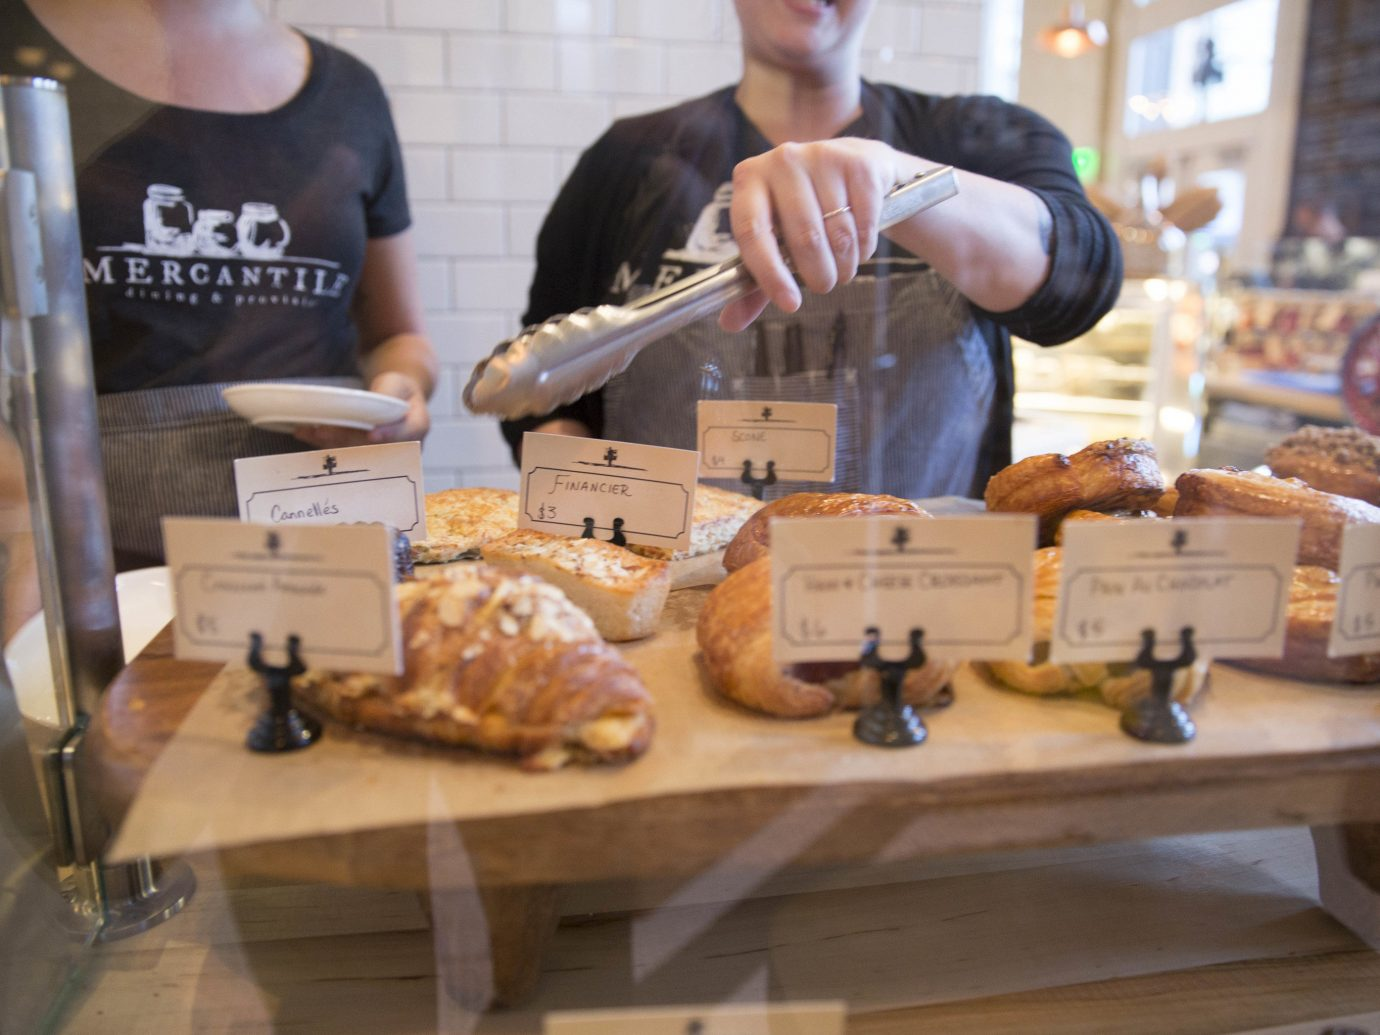 Sandwiches at Mercantile Dining and Provisions